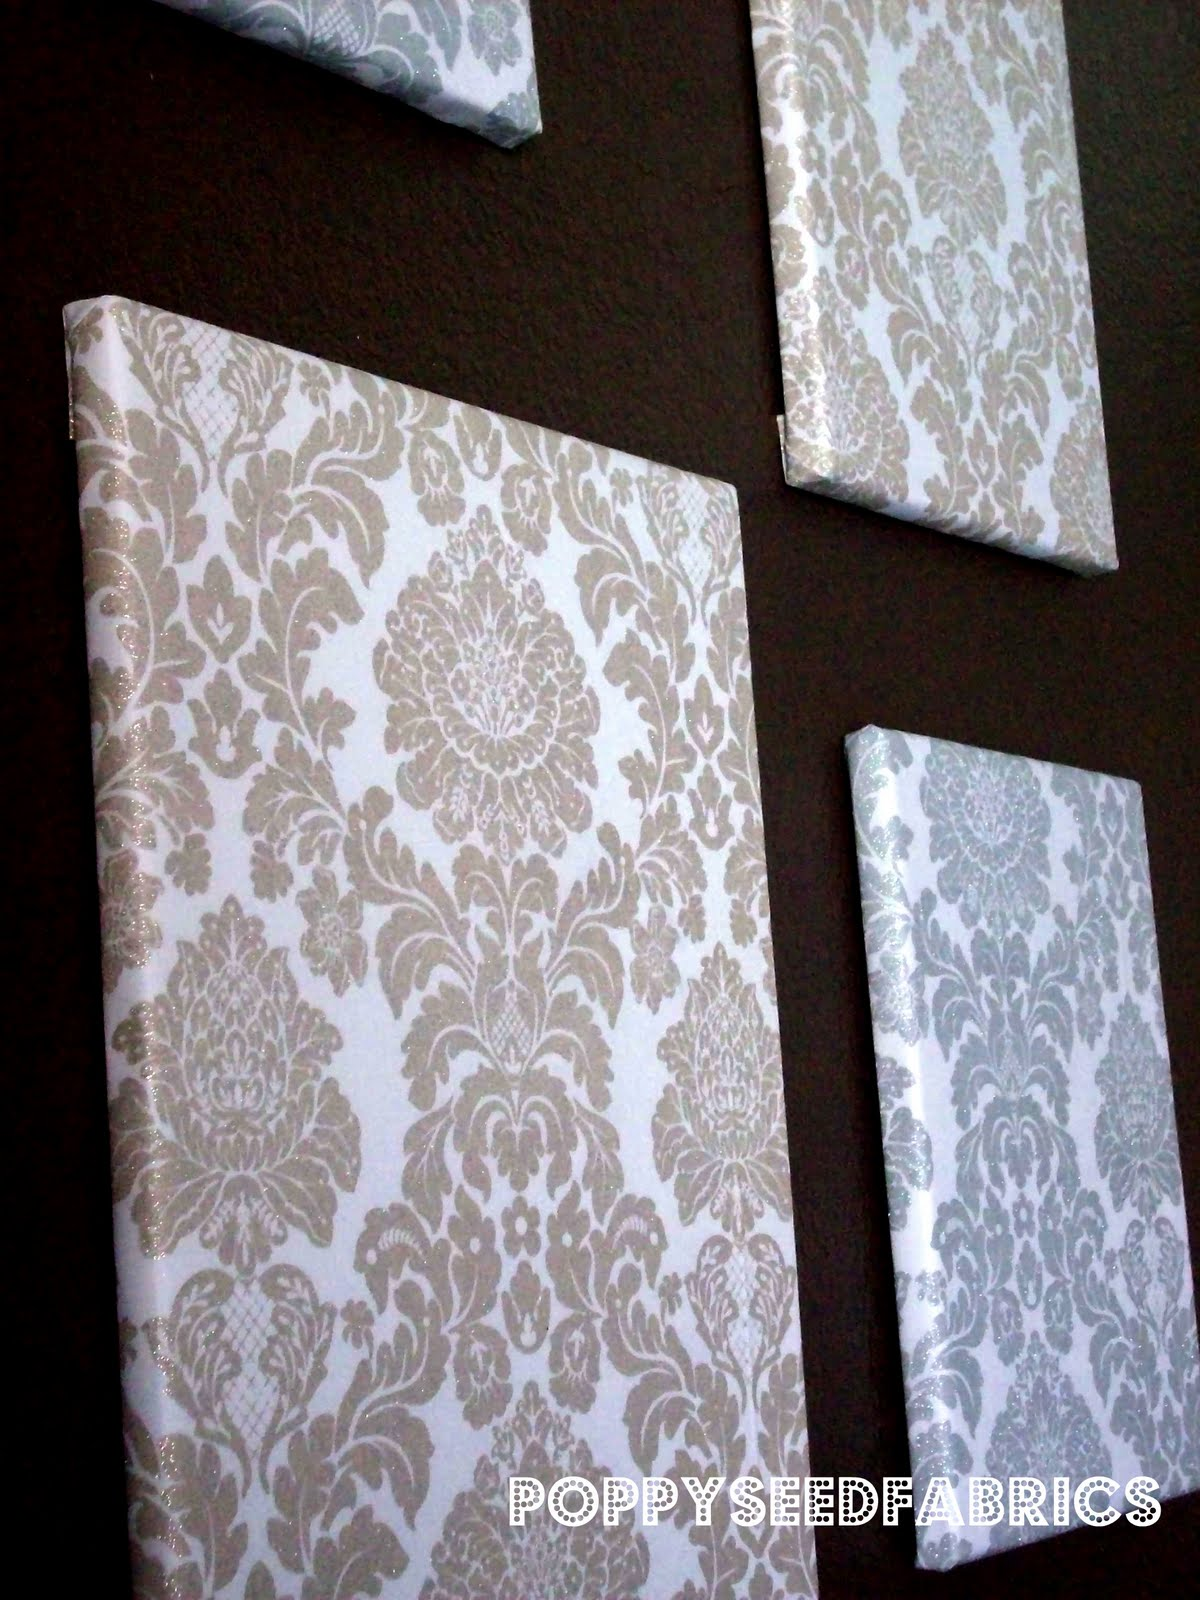 Poppyseed fabrics fabric wall art tutorial for Fabric wall art